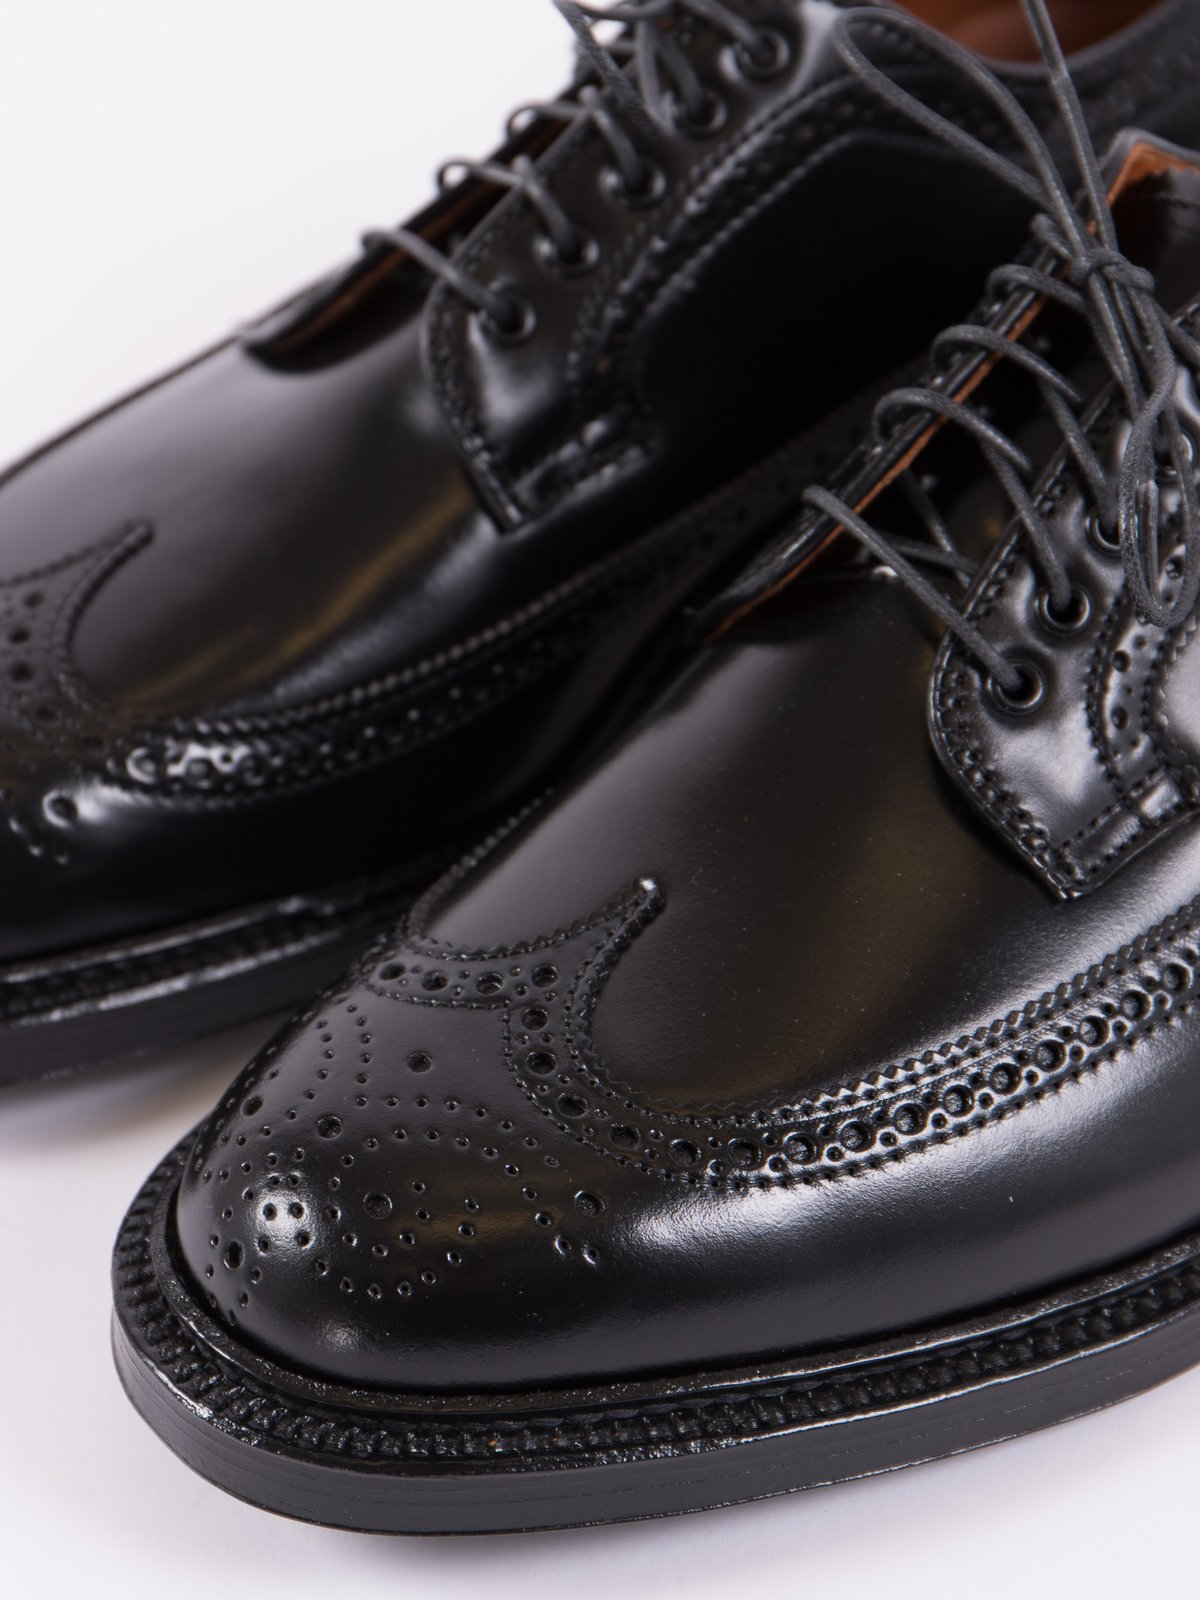 Black Cordovan Long Wing Blucher - Image 2